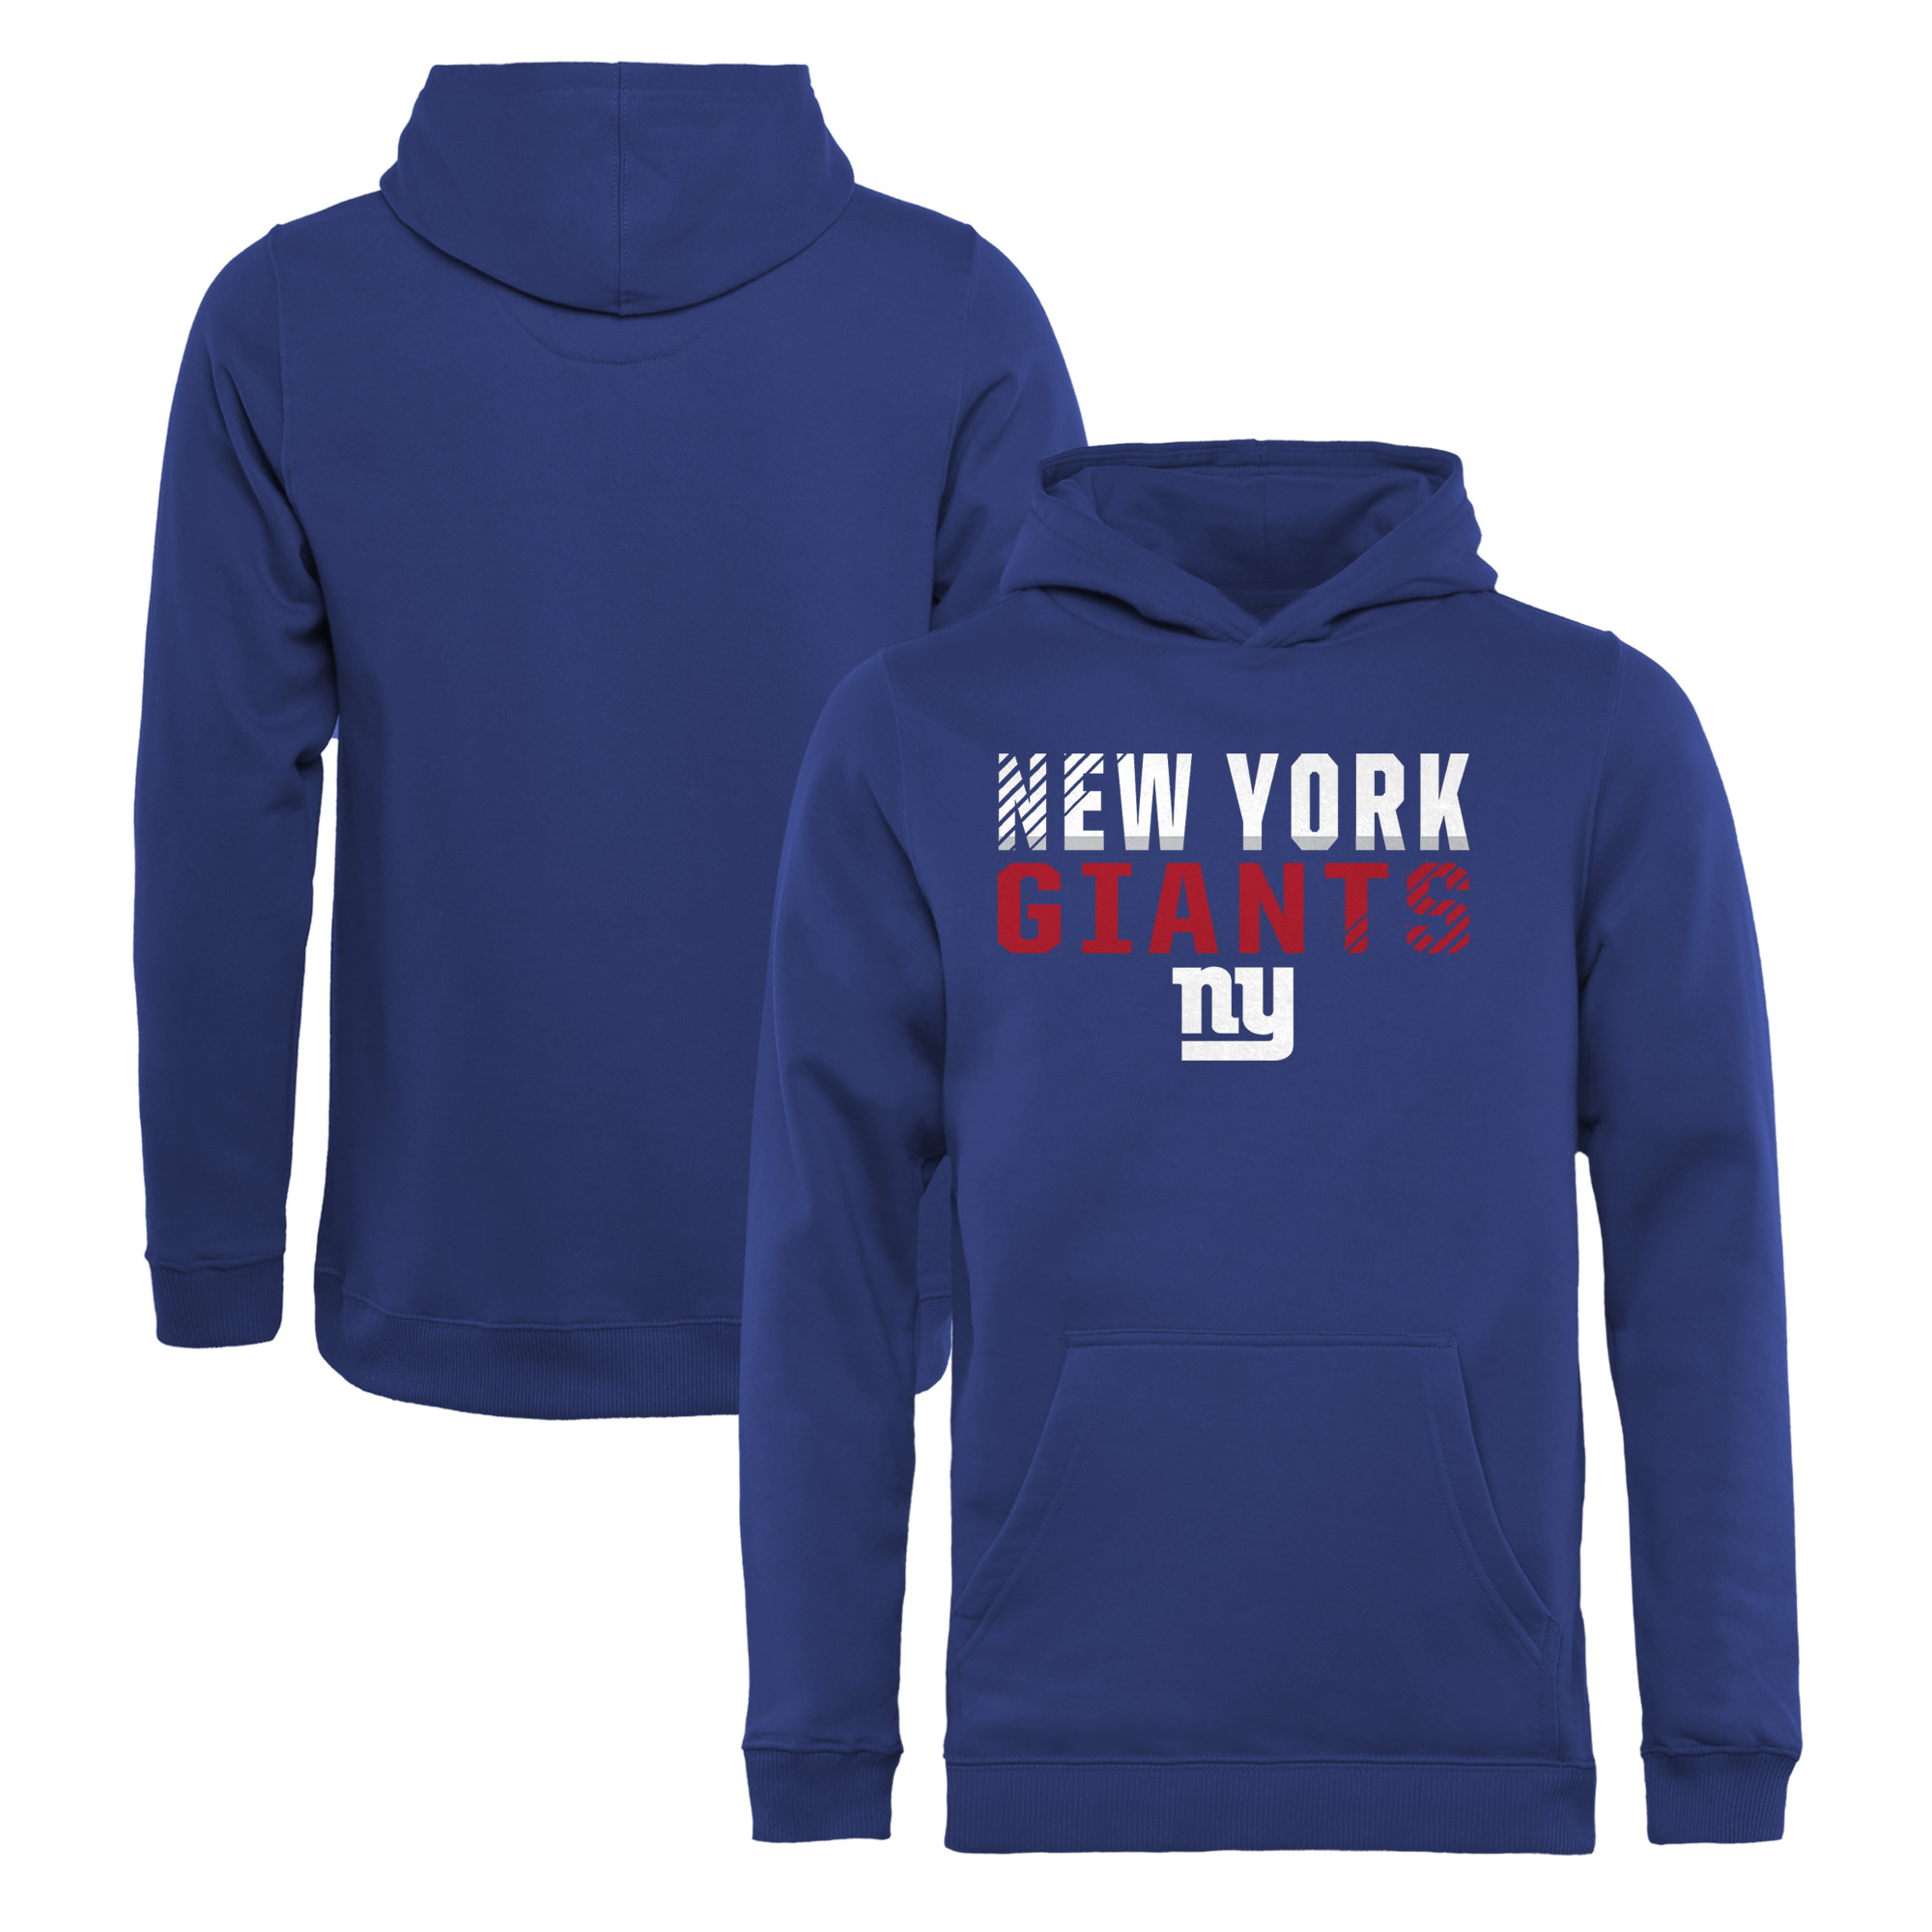 New York Giants NFL Pro Line by Fanatics Branded Youth Iconic Collection Fade Out Pullover Hoodie - Royal